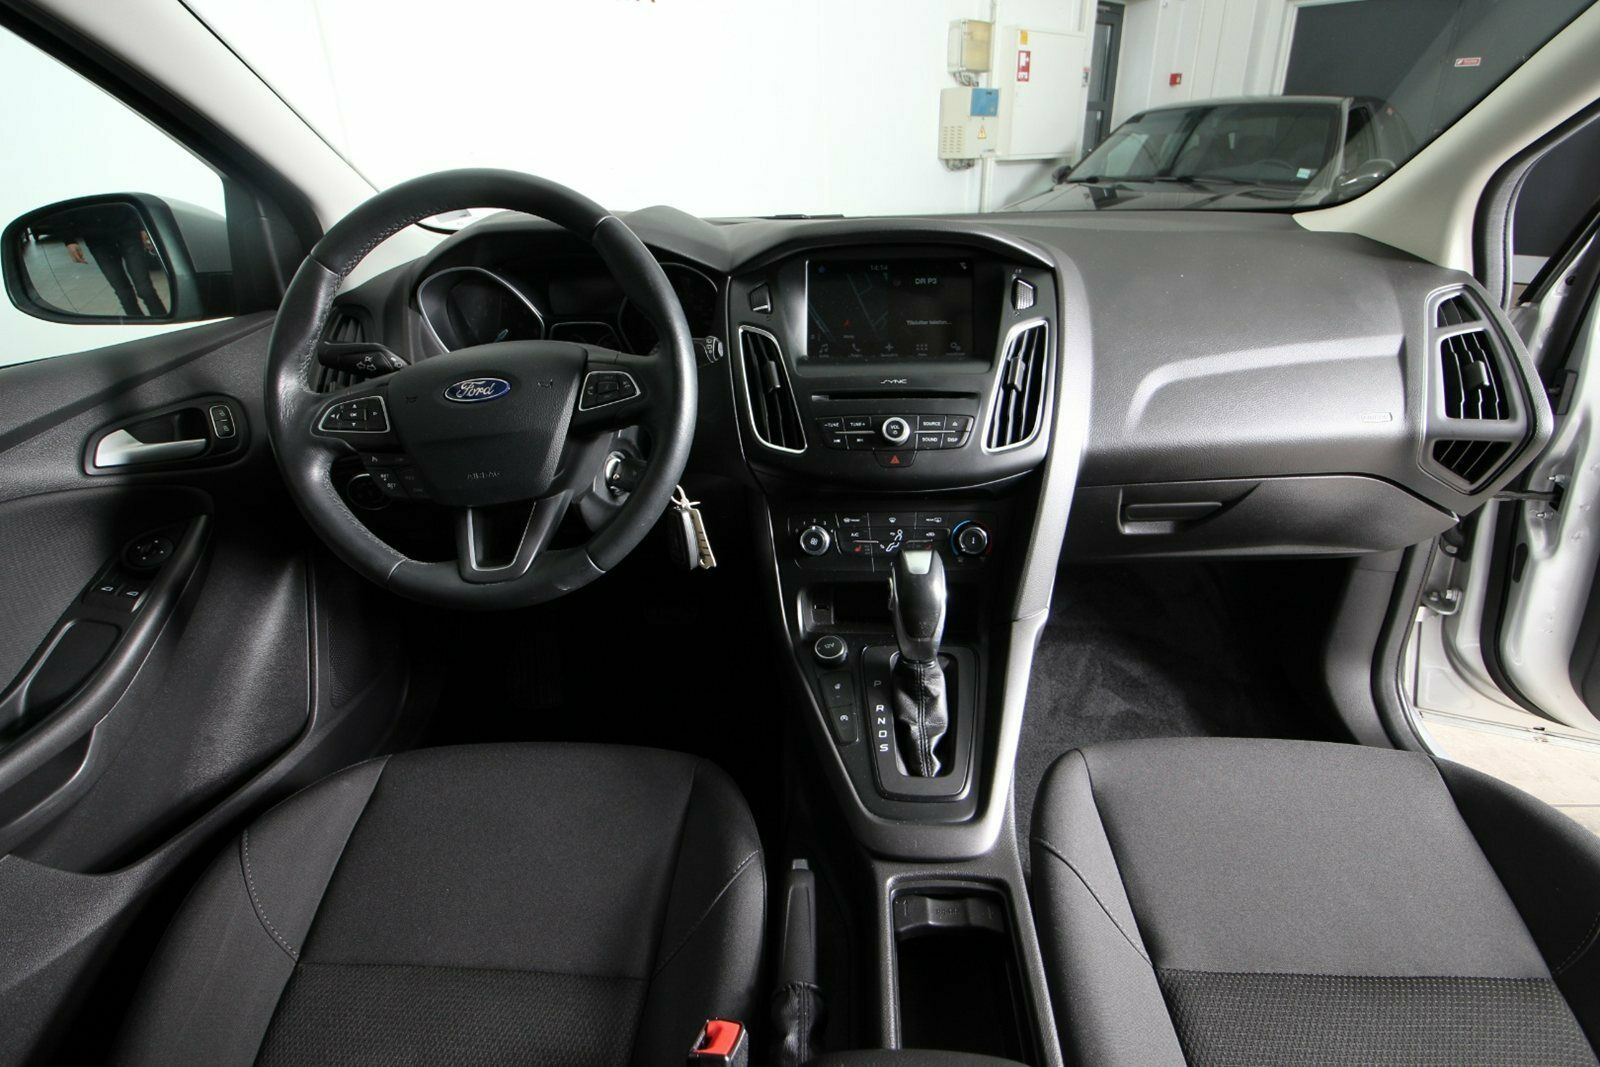 Ford Focus TDCi 150 Business aut.